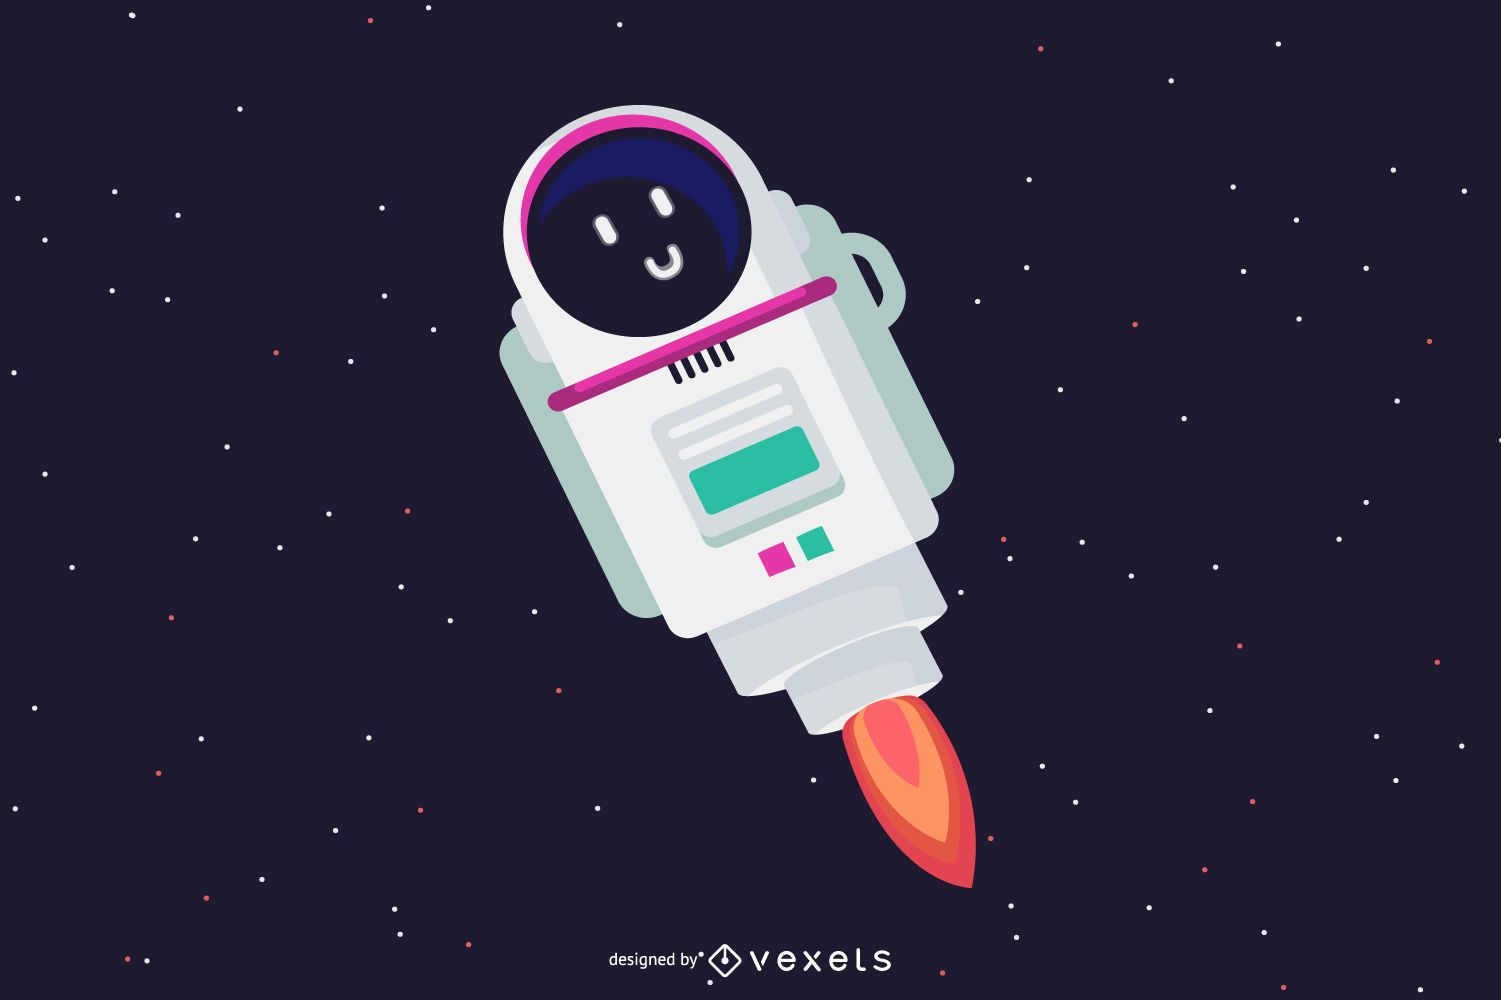 Cute space robot illustration